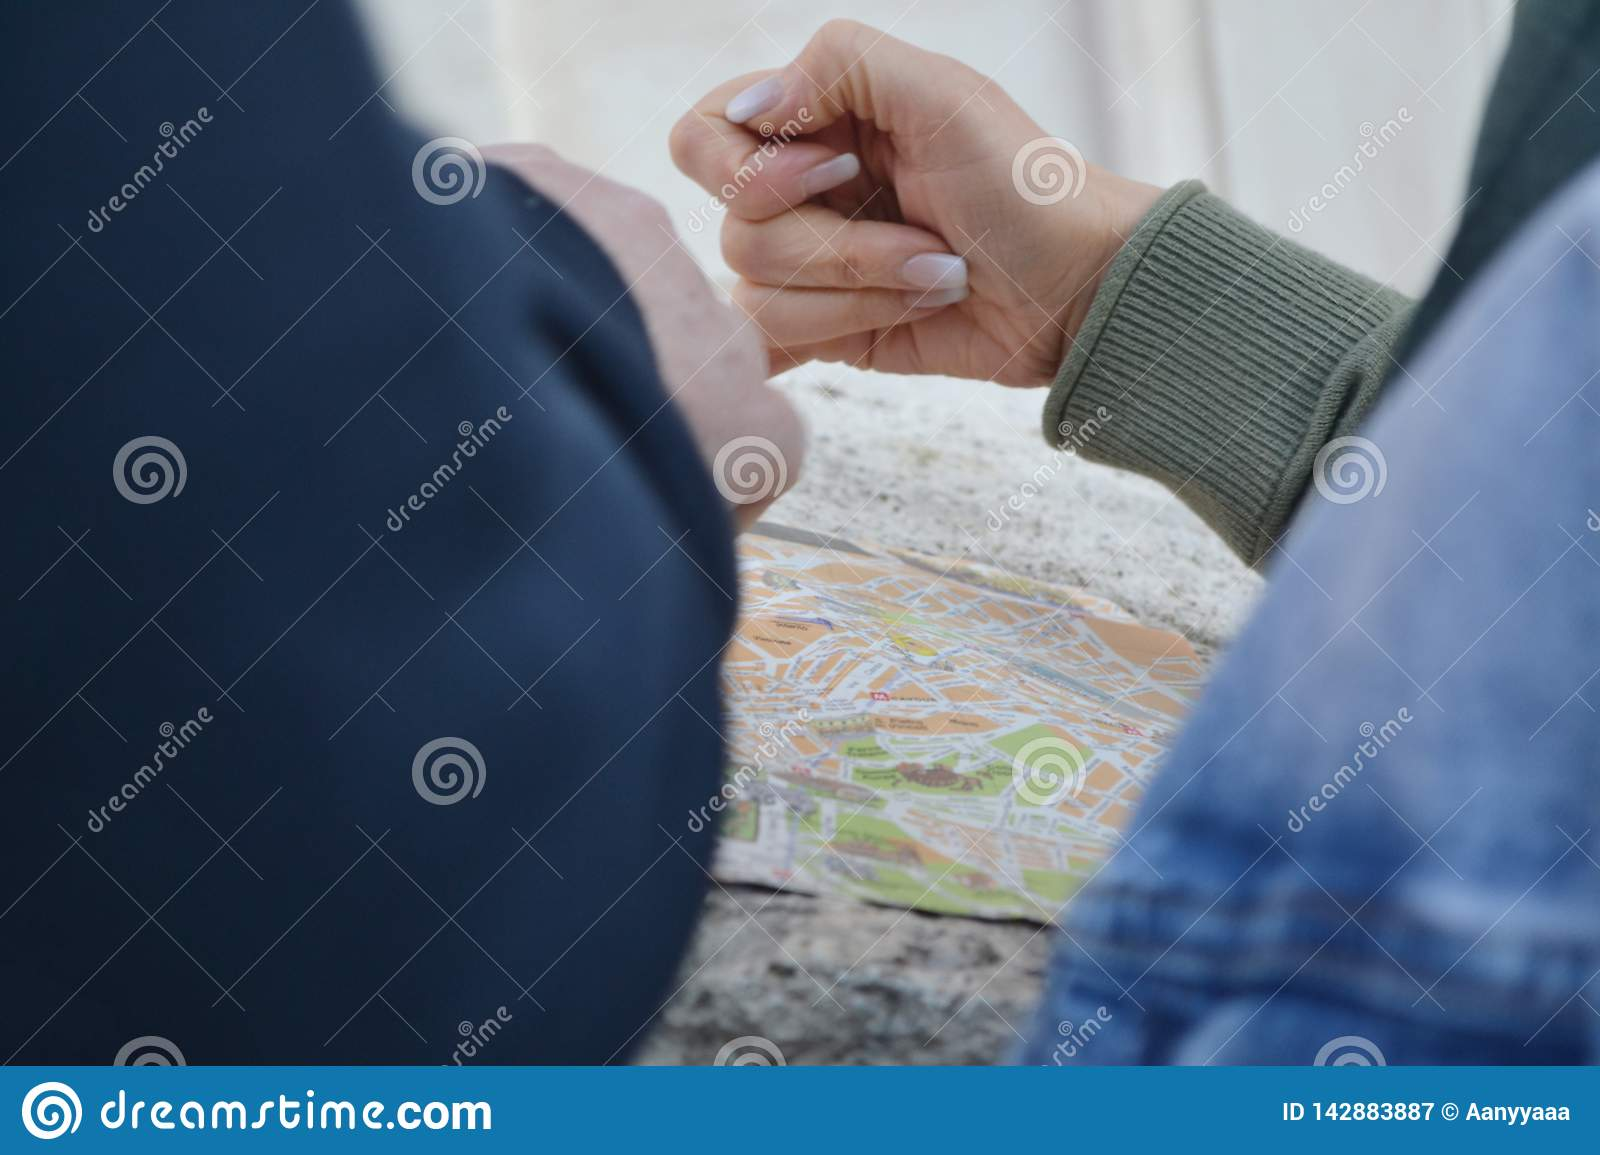 Peaple hands choicing way on the traveling map